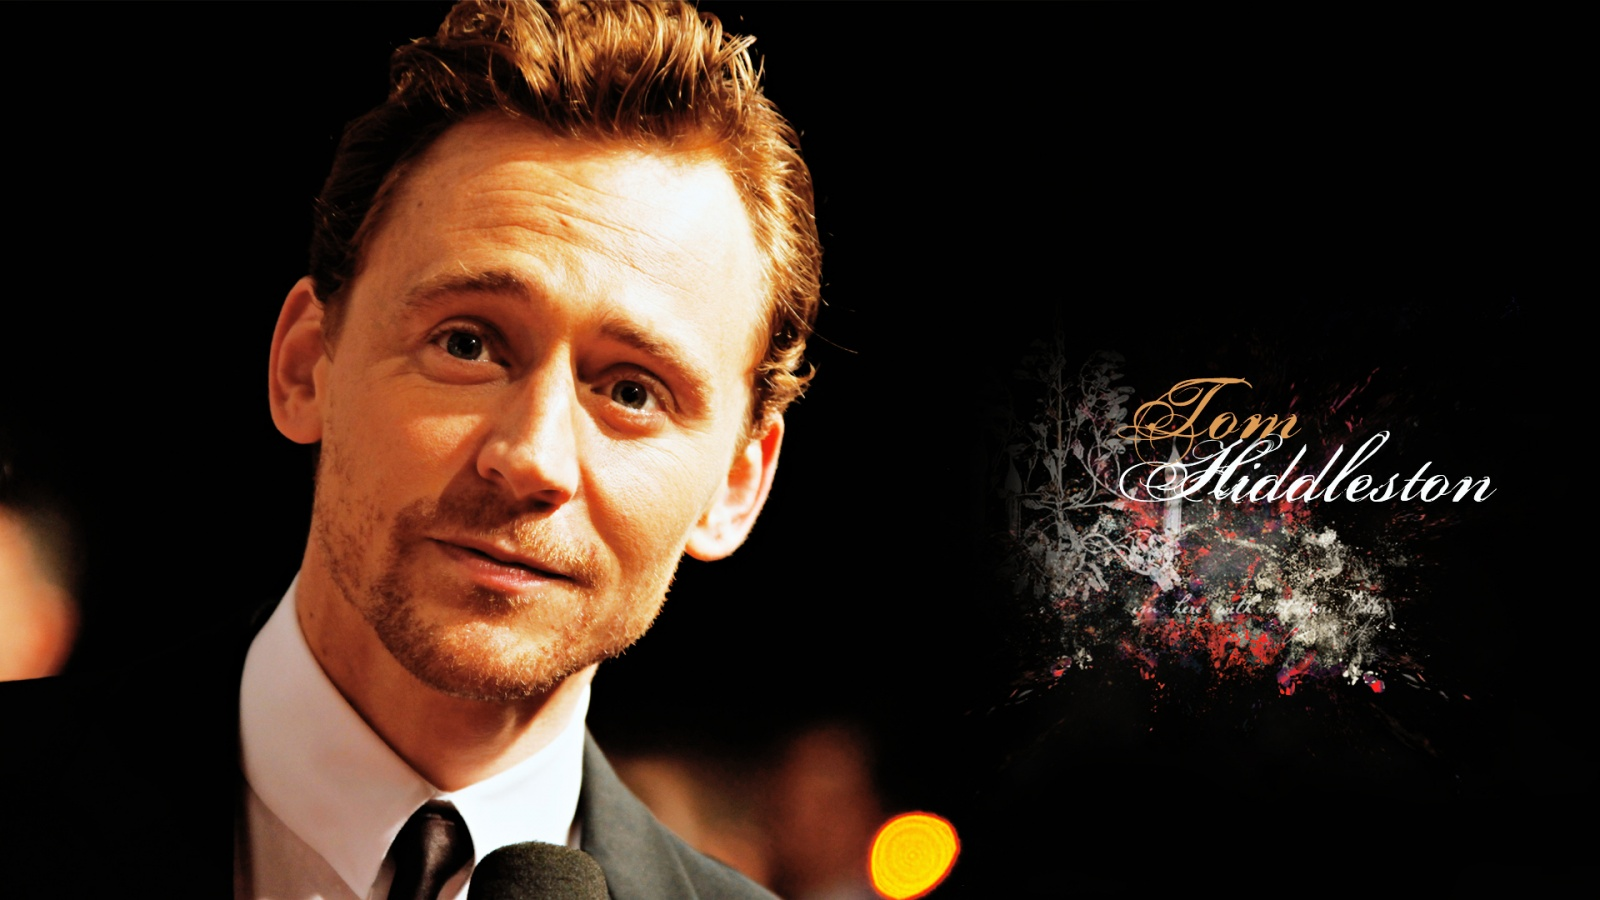 Tom Hiddleston Wallpapers   1600x900   279267 1600x900